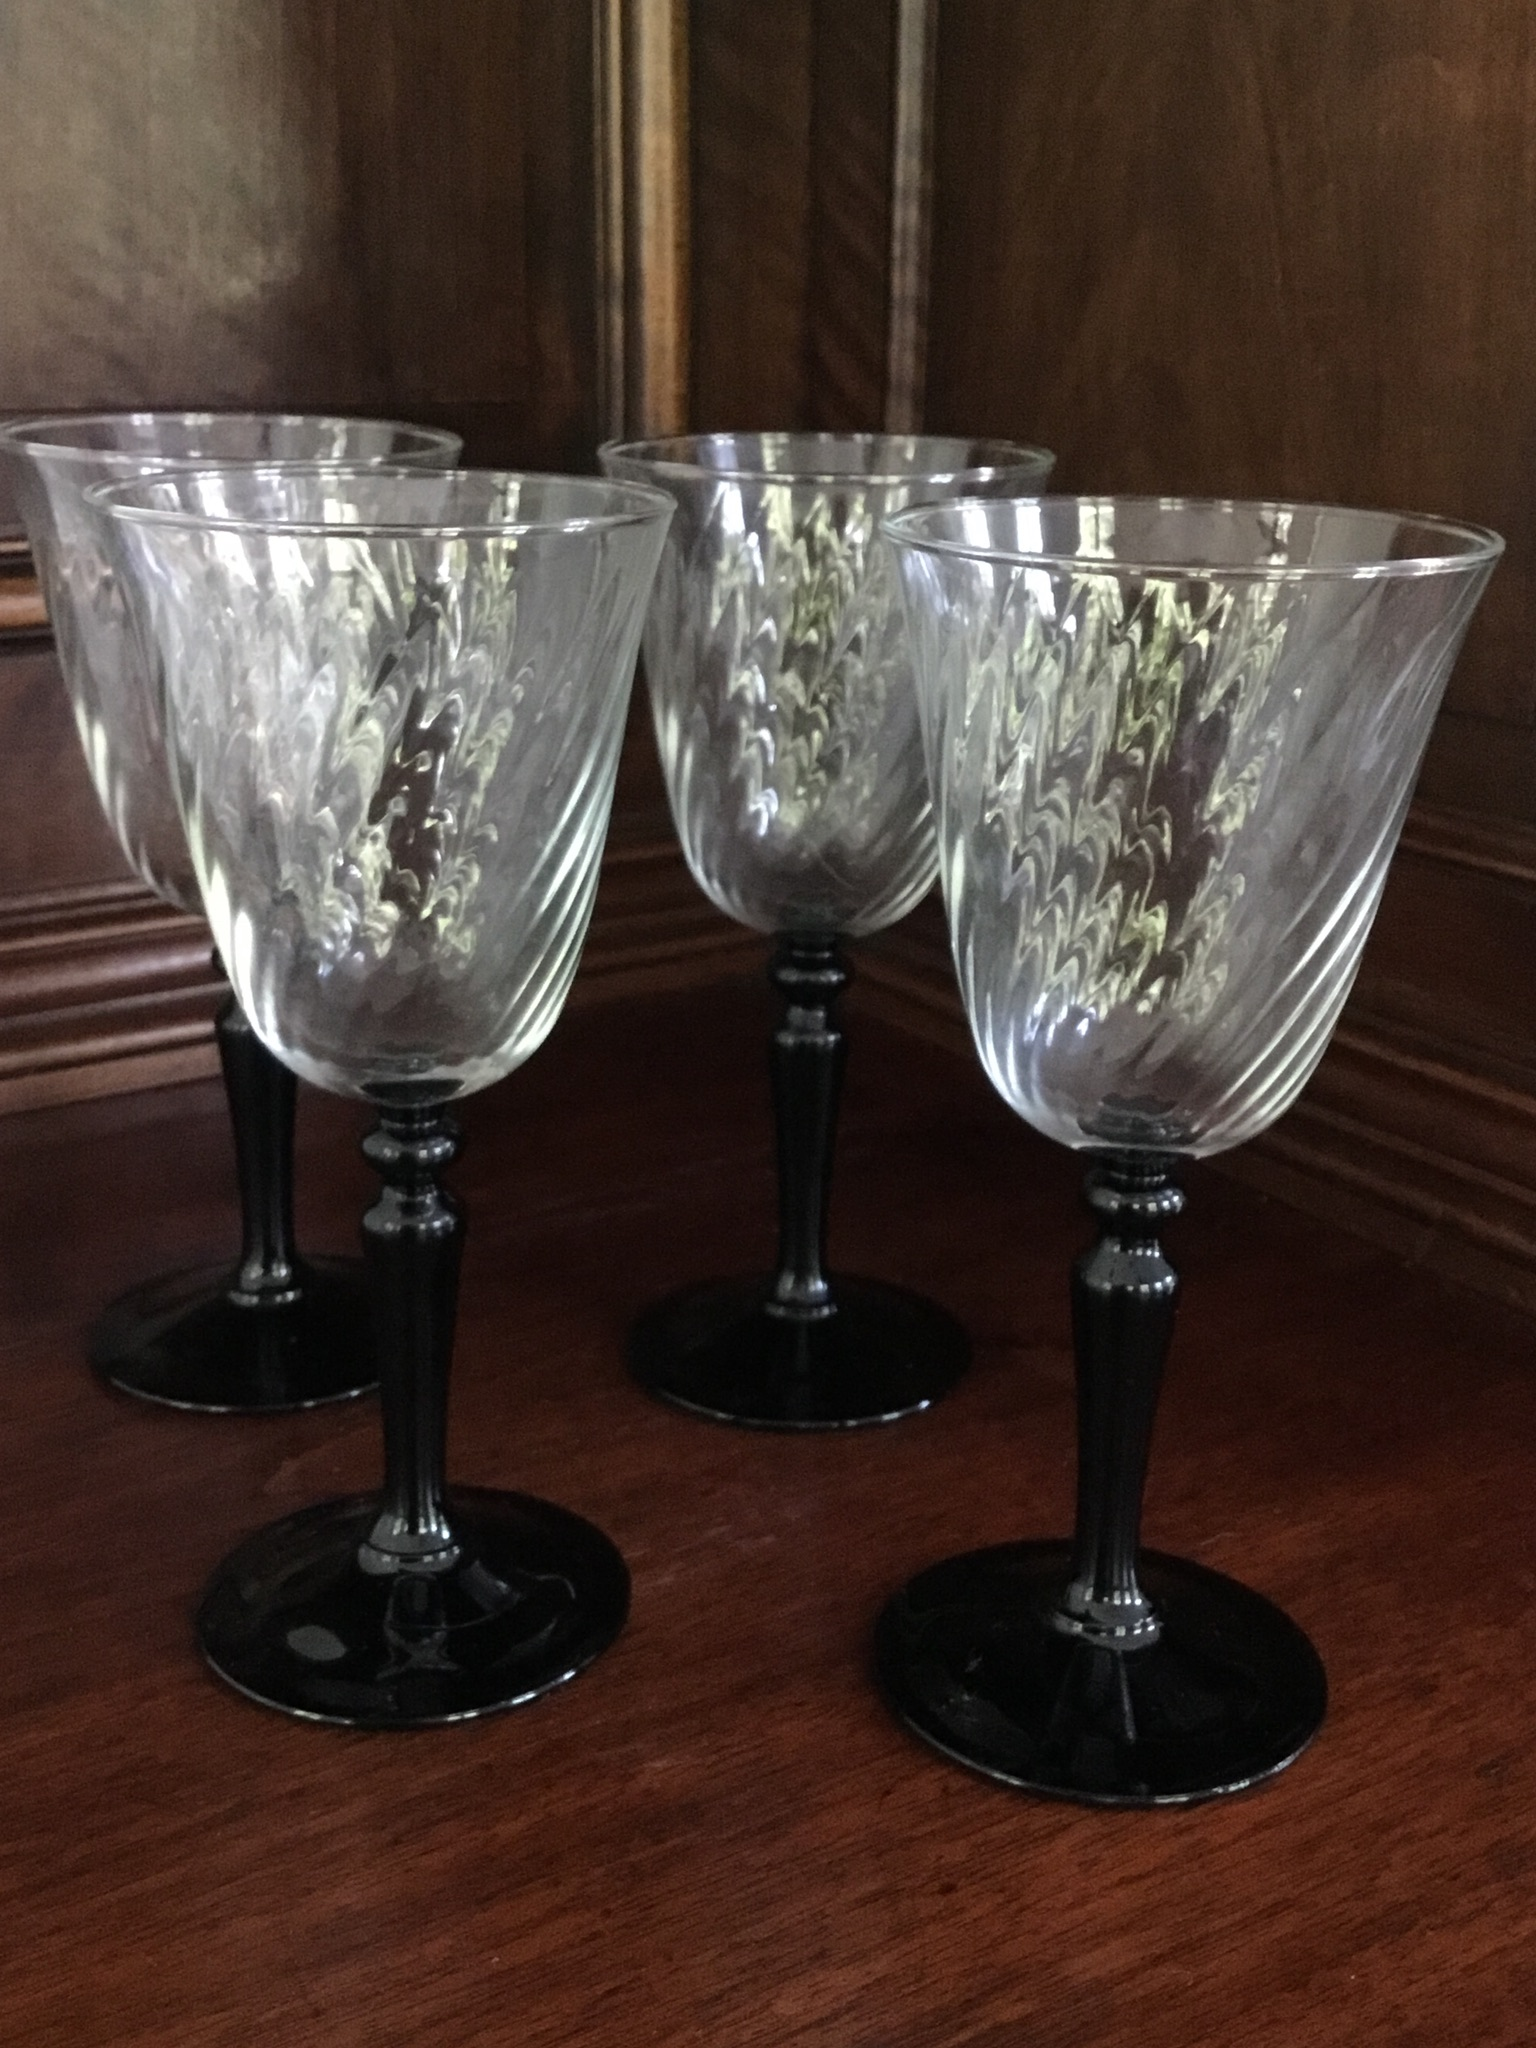 Wine Glasses With Black Stems Black Stem Wine Glasses Set Of 4